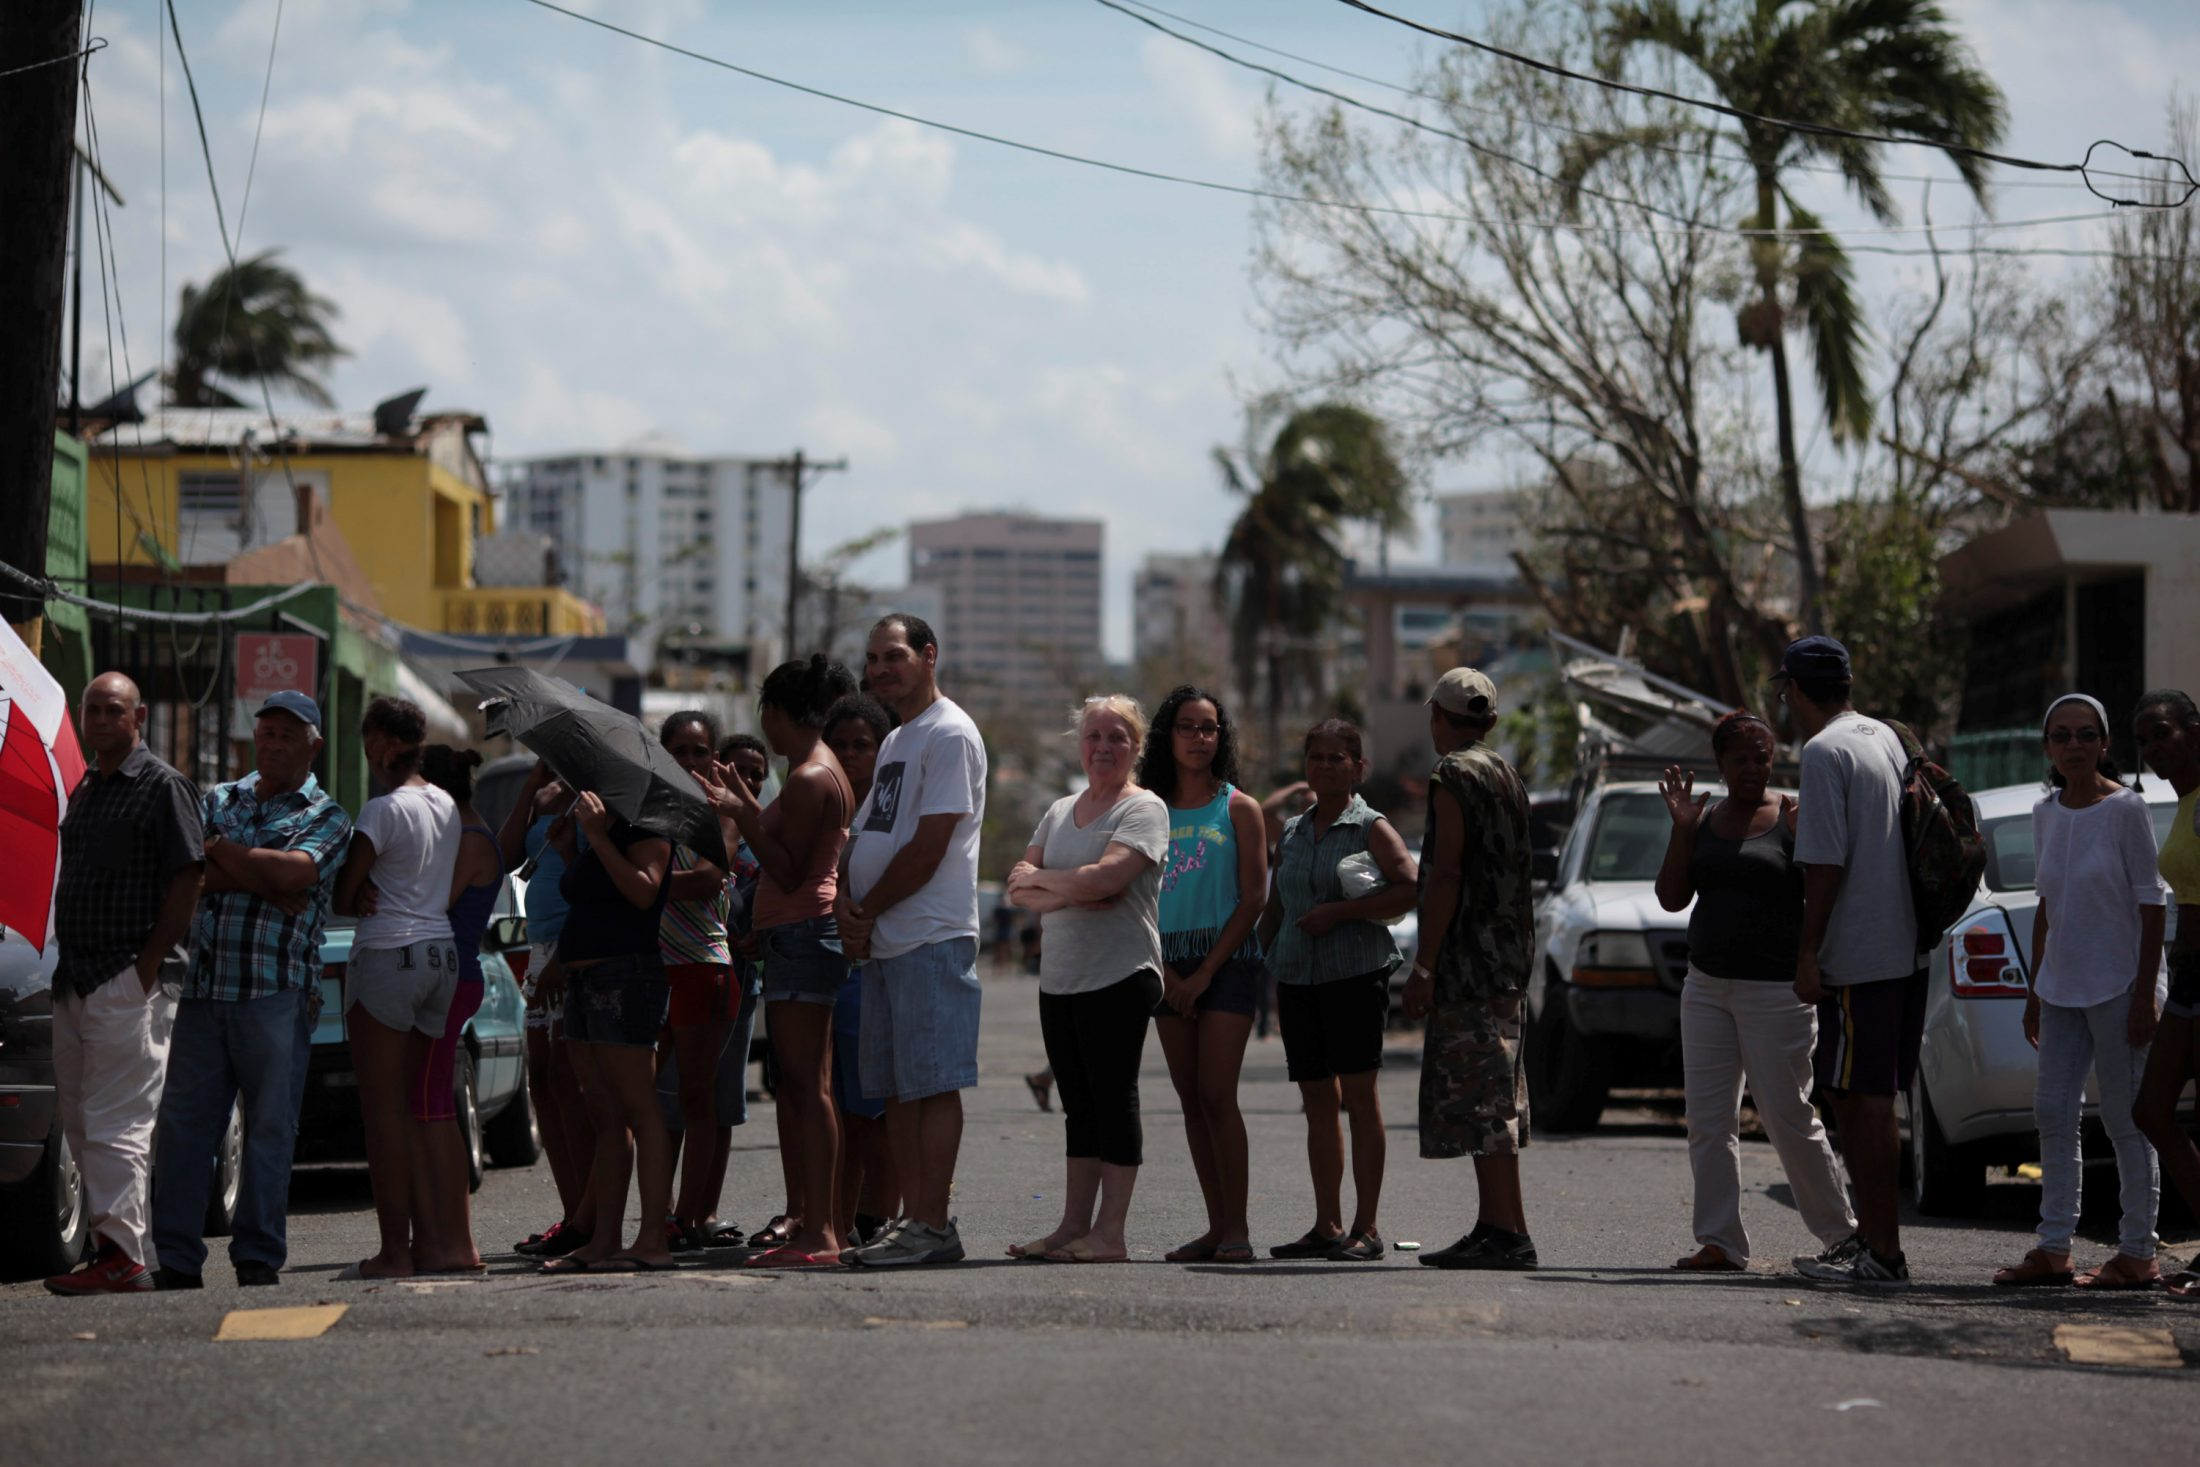 People wait in line for relief items to be distributed, after the area was hit by Hurricane Maria in San Juan, Puerto Rico. Photo by Alvin Baez/Reuters